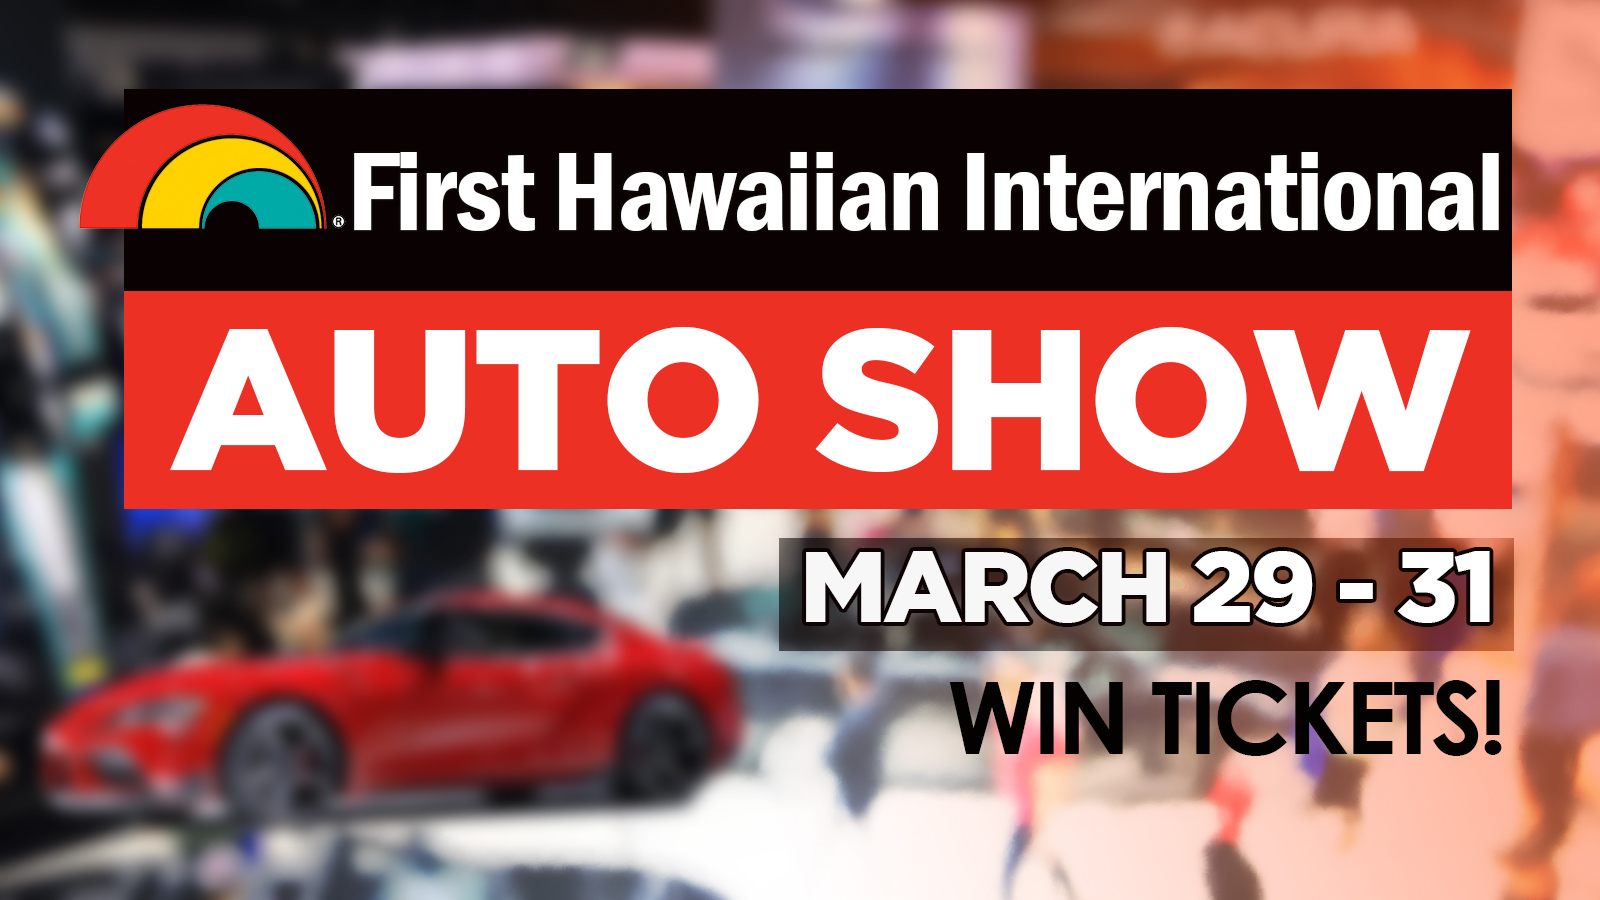 1280 x 720 AUTO SHOW CONTEST GRAPHIC WEB VERSION V1_1553514939860.jpg.jpg